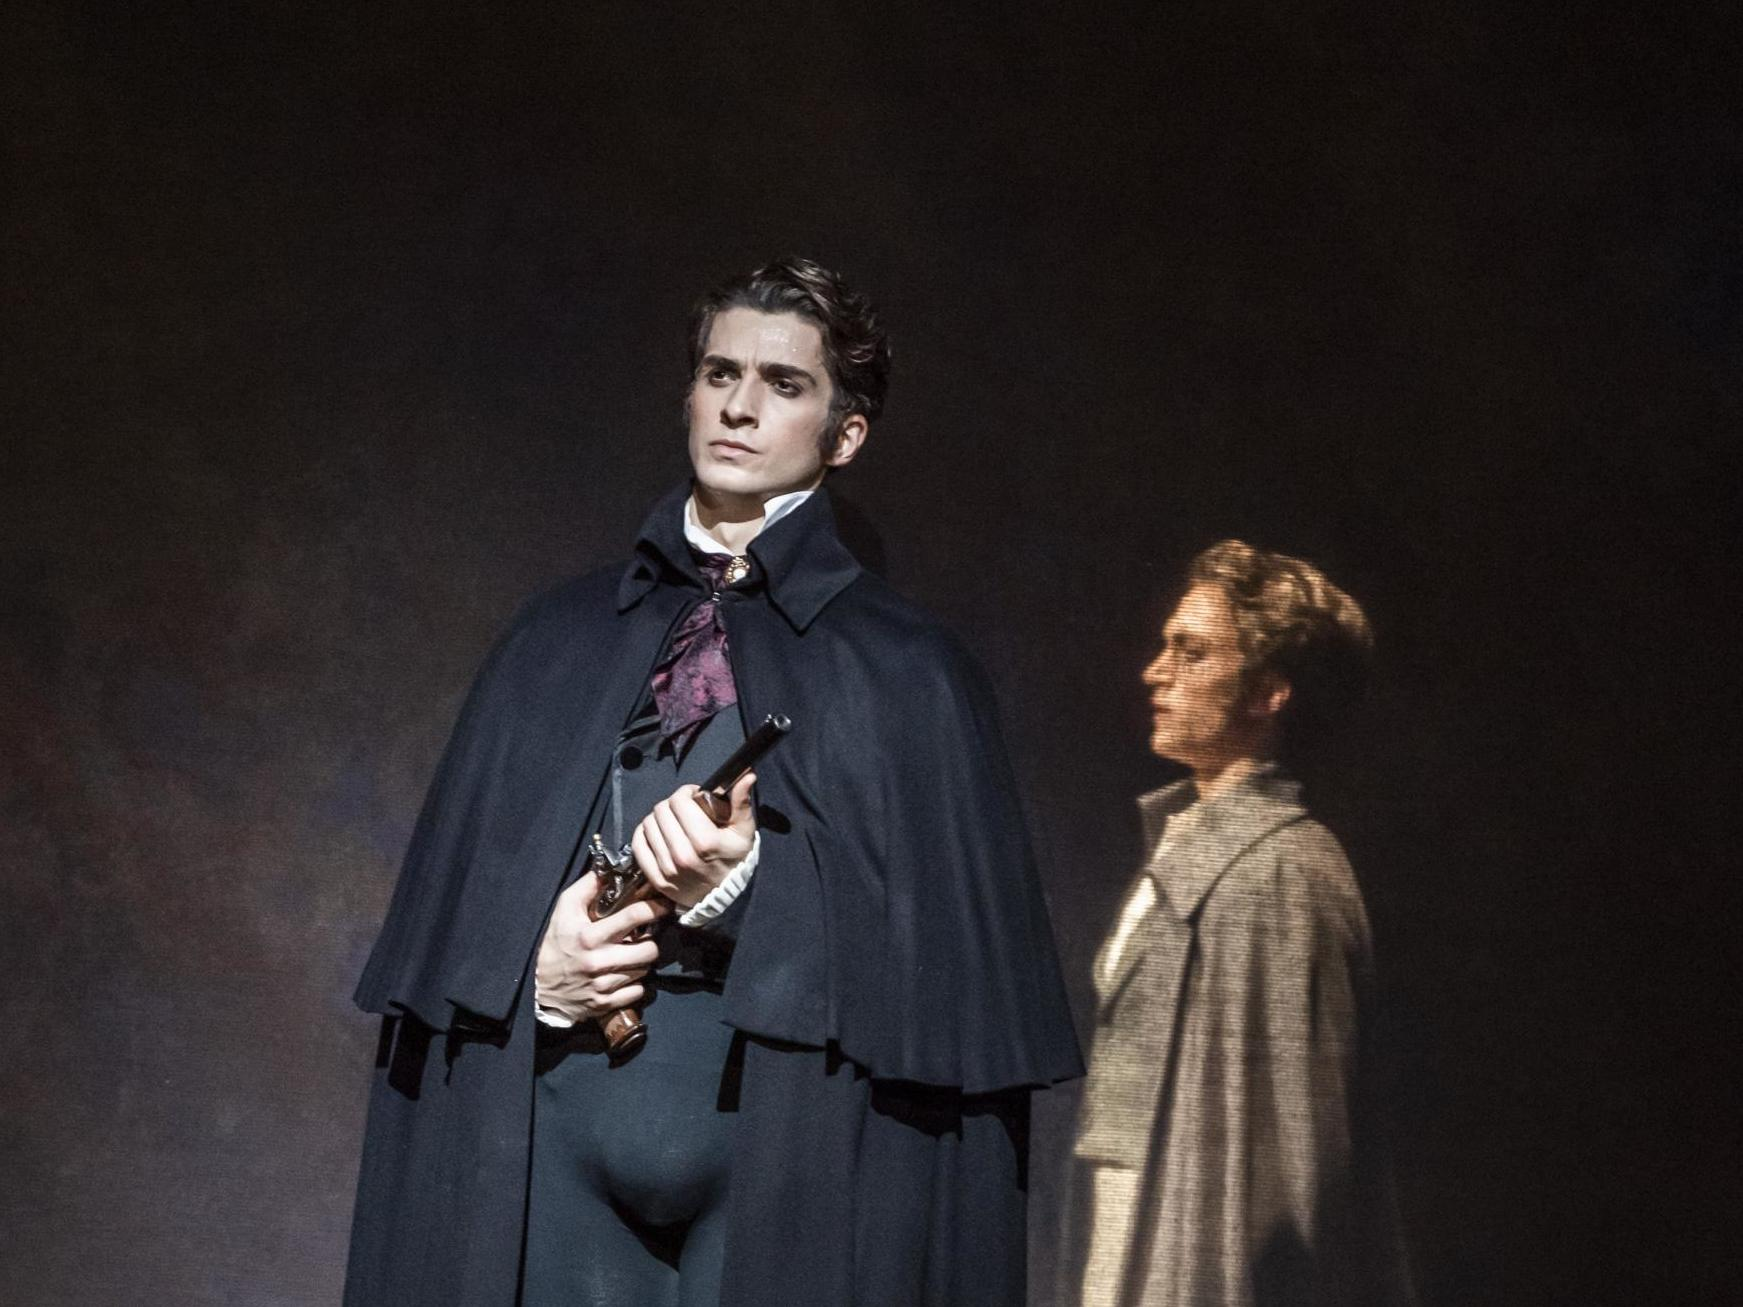 Onegin, Royal Opera House review: Ballet returns with a fascinating mix of established names and rising artists